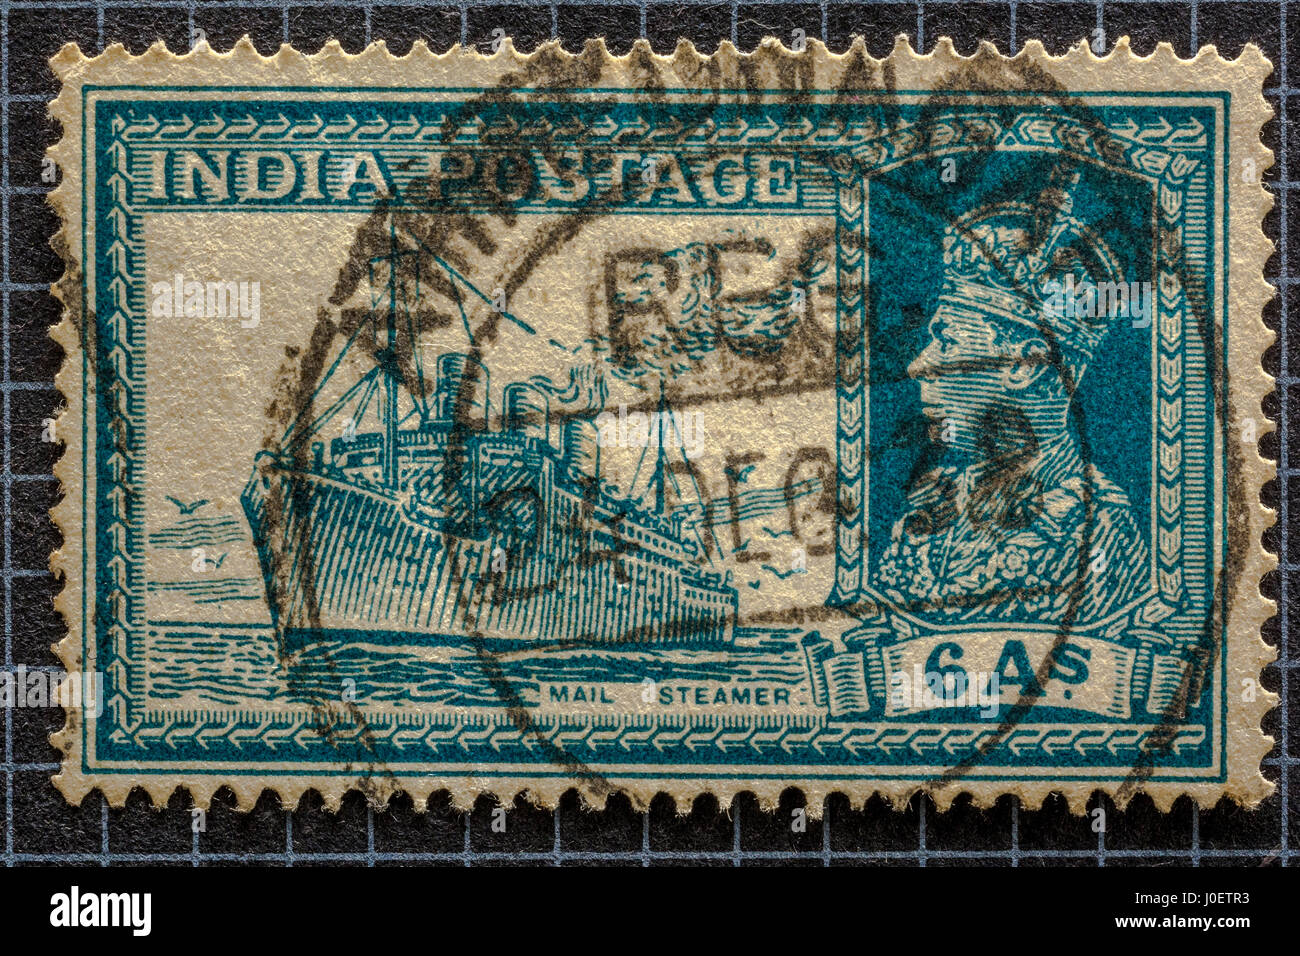 Transport mail steamer 6 annas, postage stamps, india, asia - Stock Image